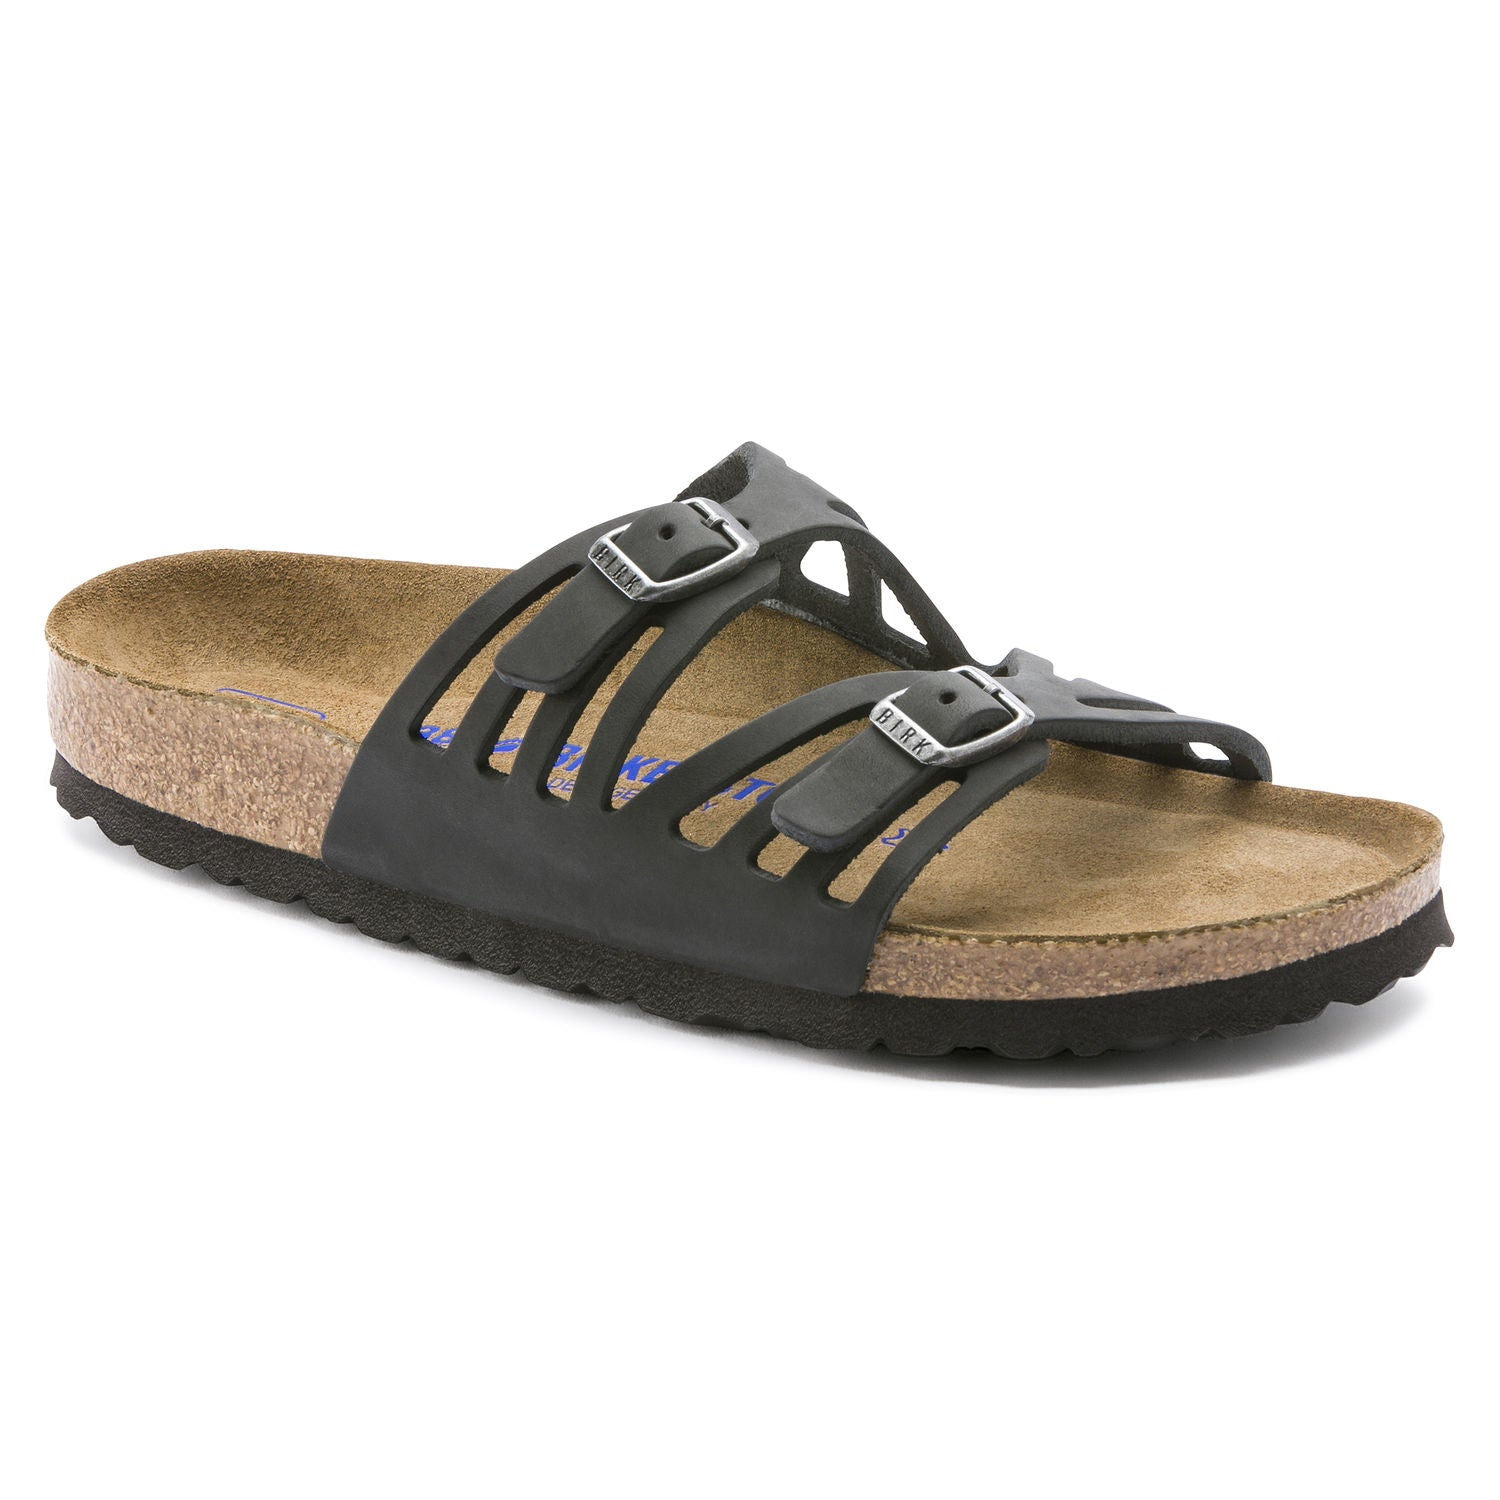 Granada Soft Footbed - Black Oiled Leather